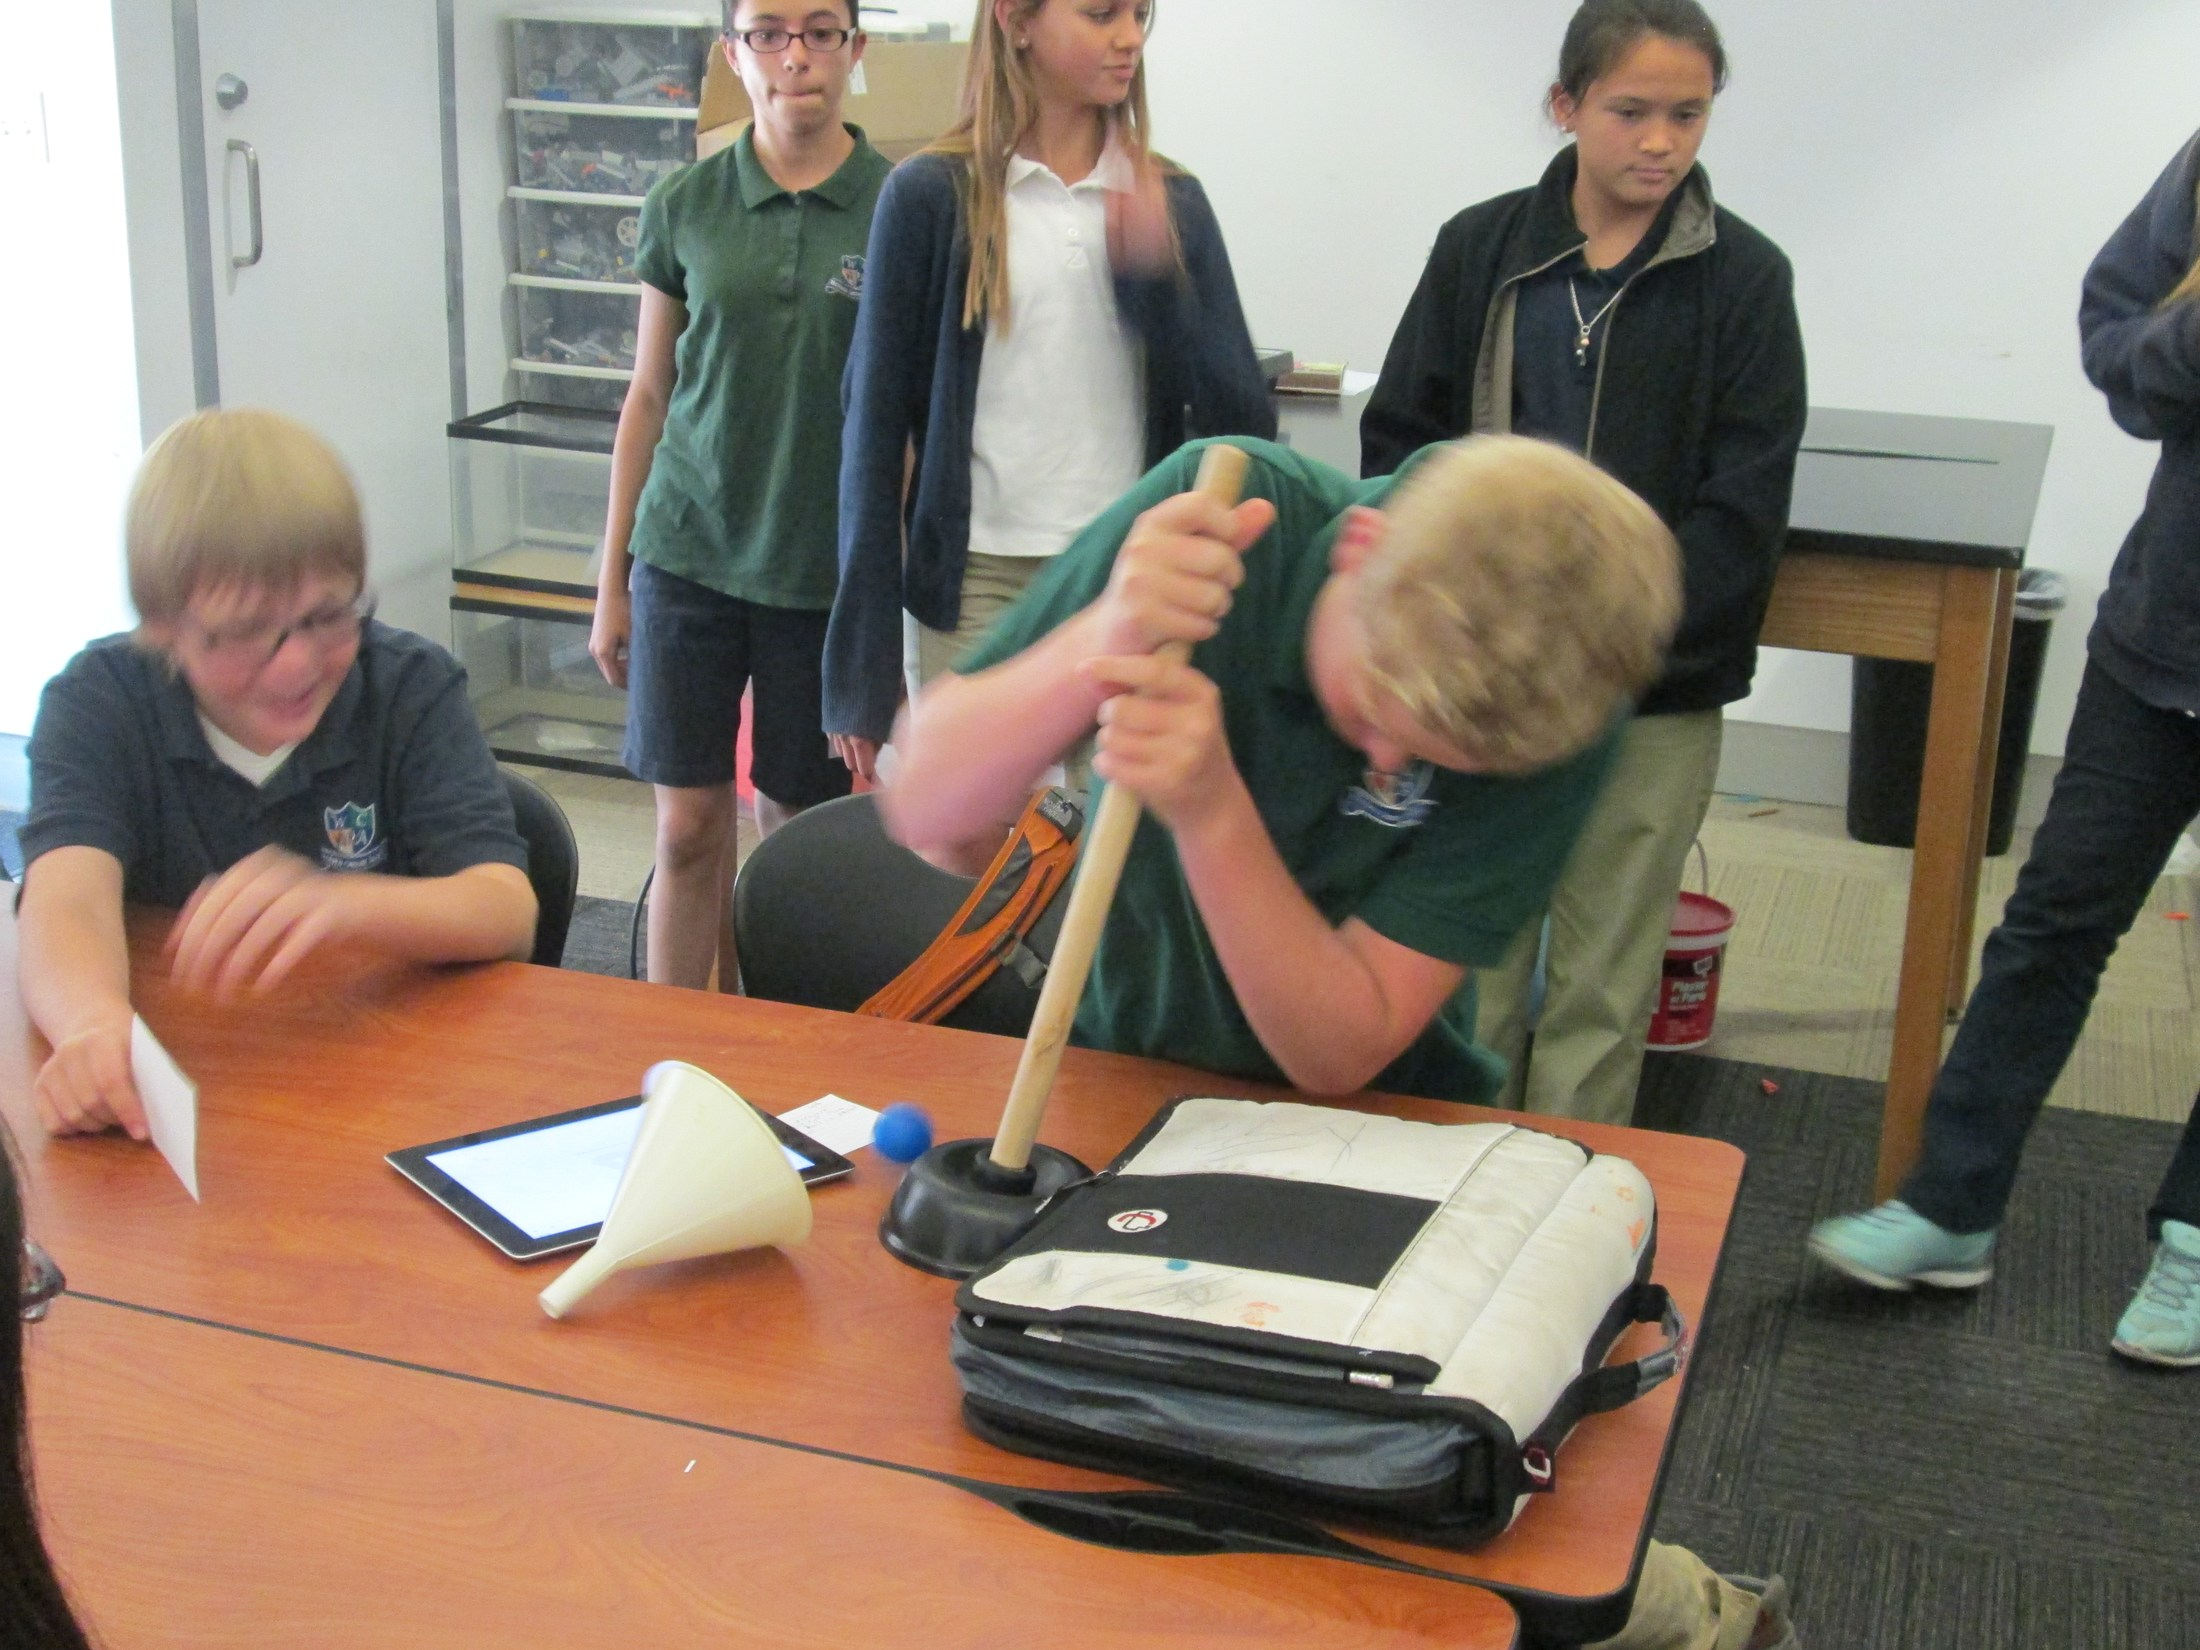 This week the 6th graders had a science lab on air pressure. Looks like everyone had a great time!